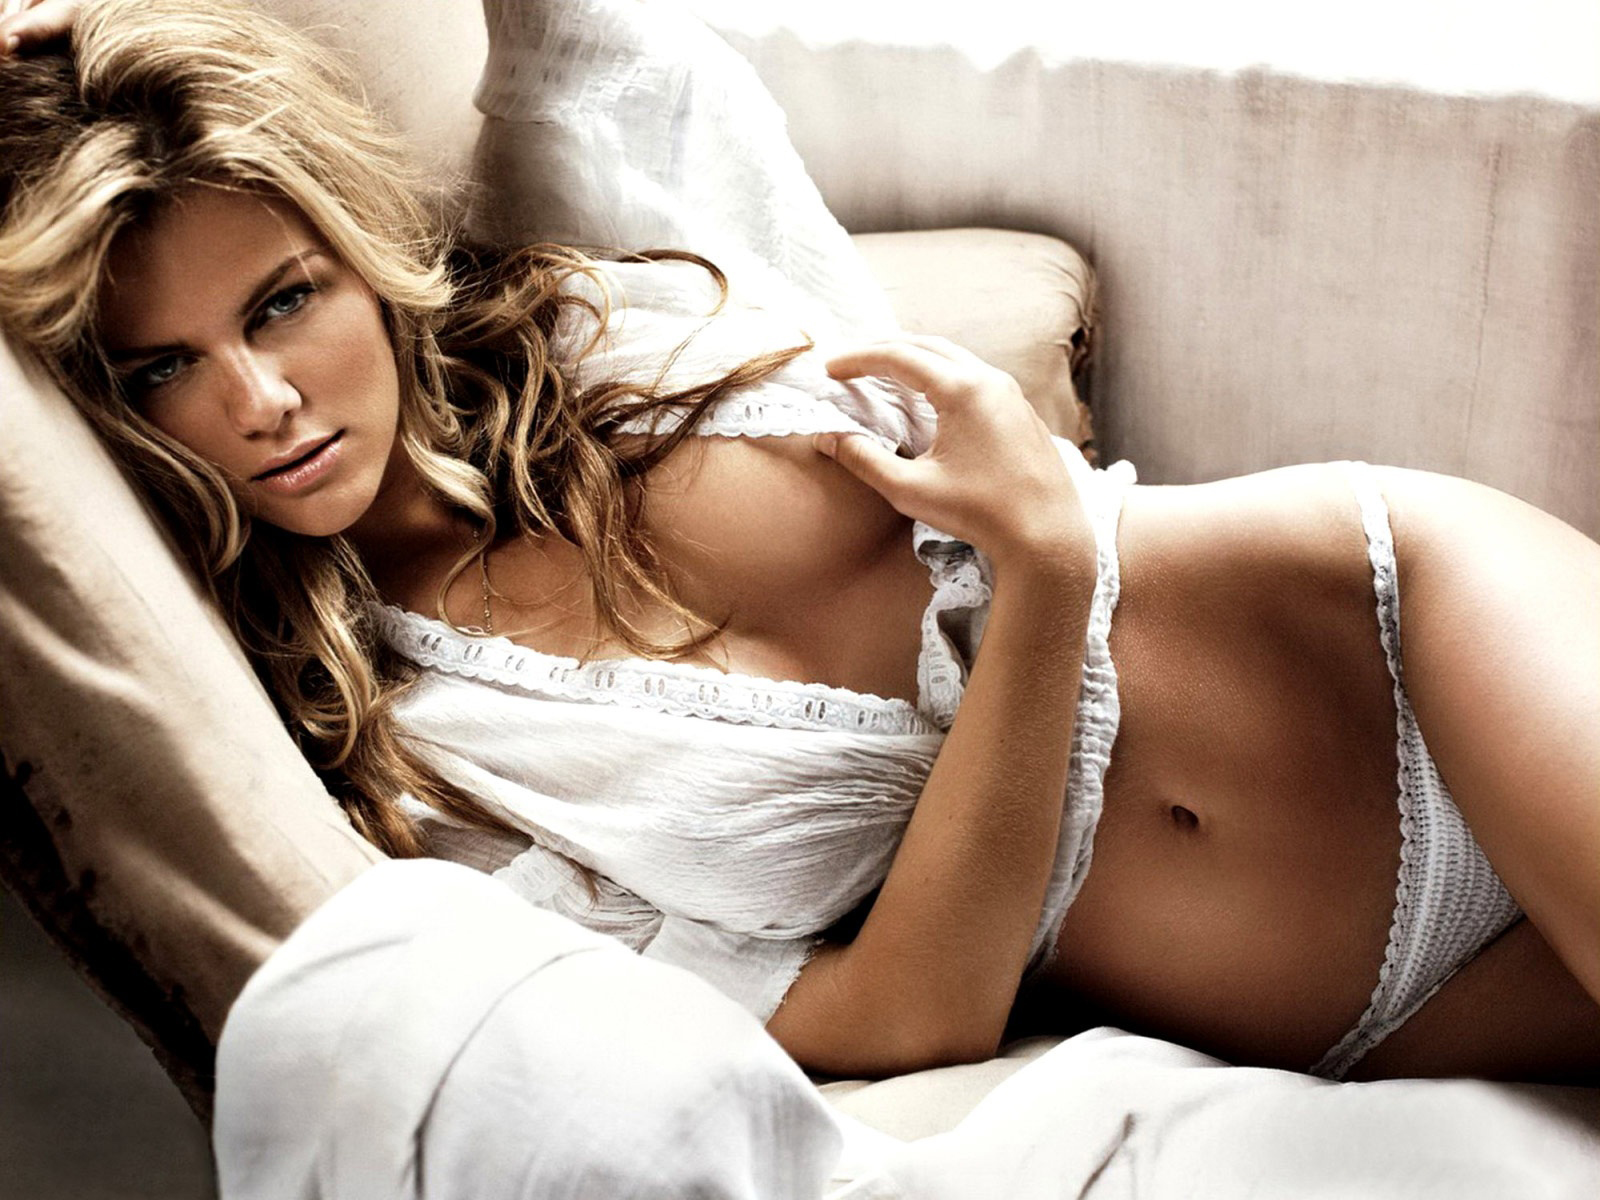 brooklyn decker 1600x179z2 Topics: anal sex ♦ gay marriage ♦ marriage equality